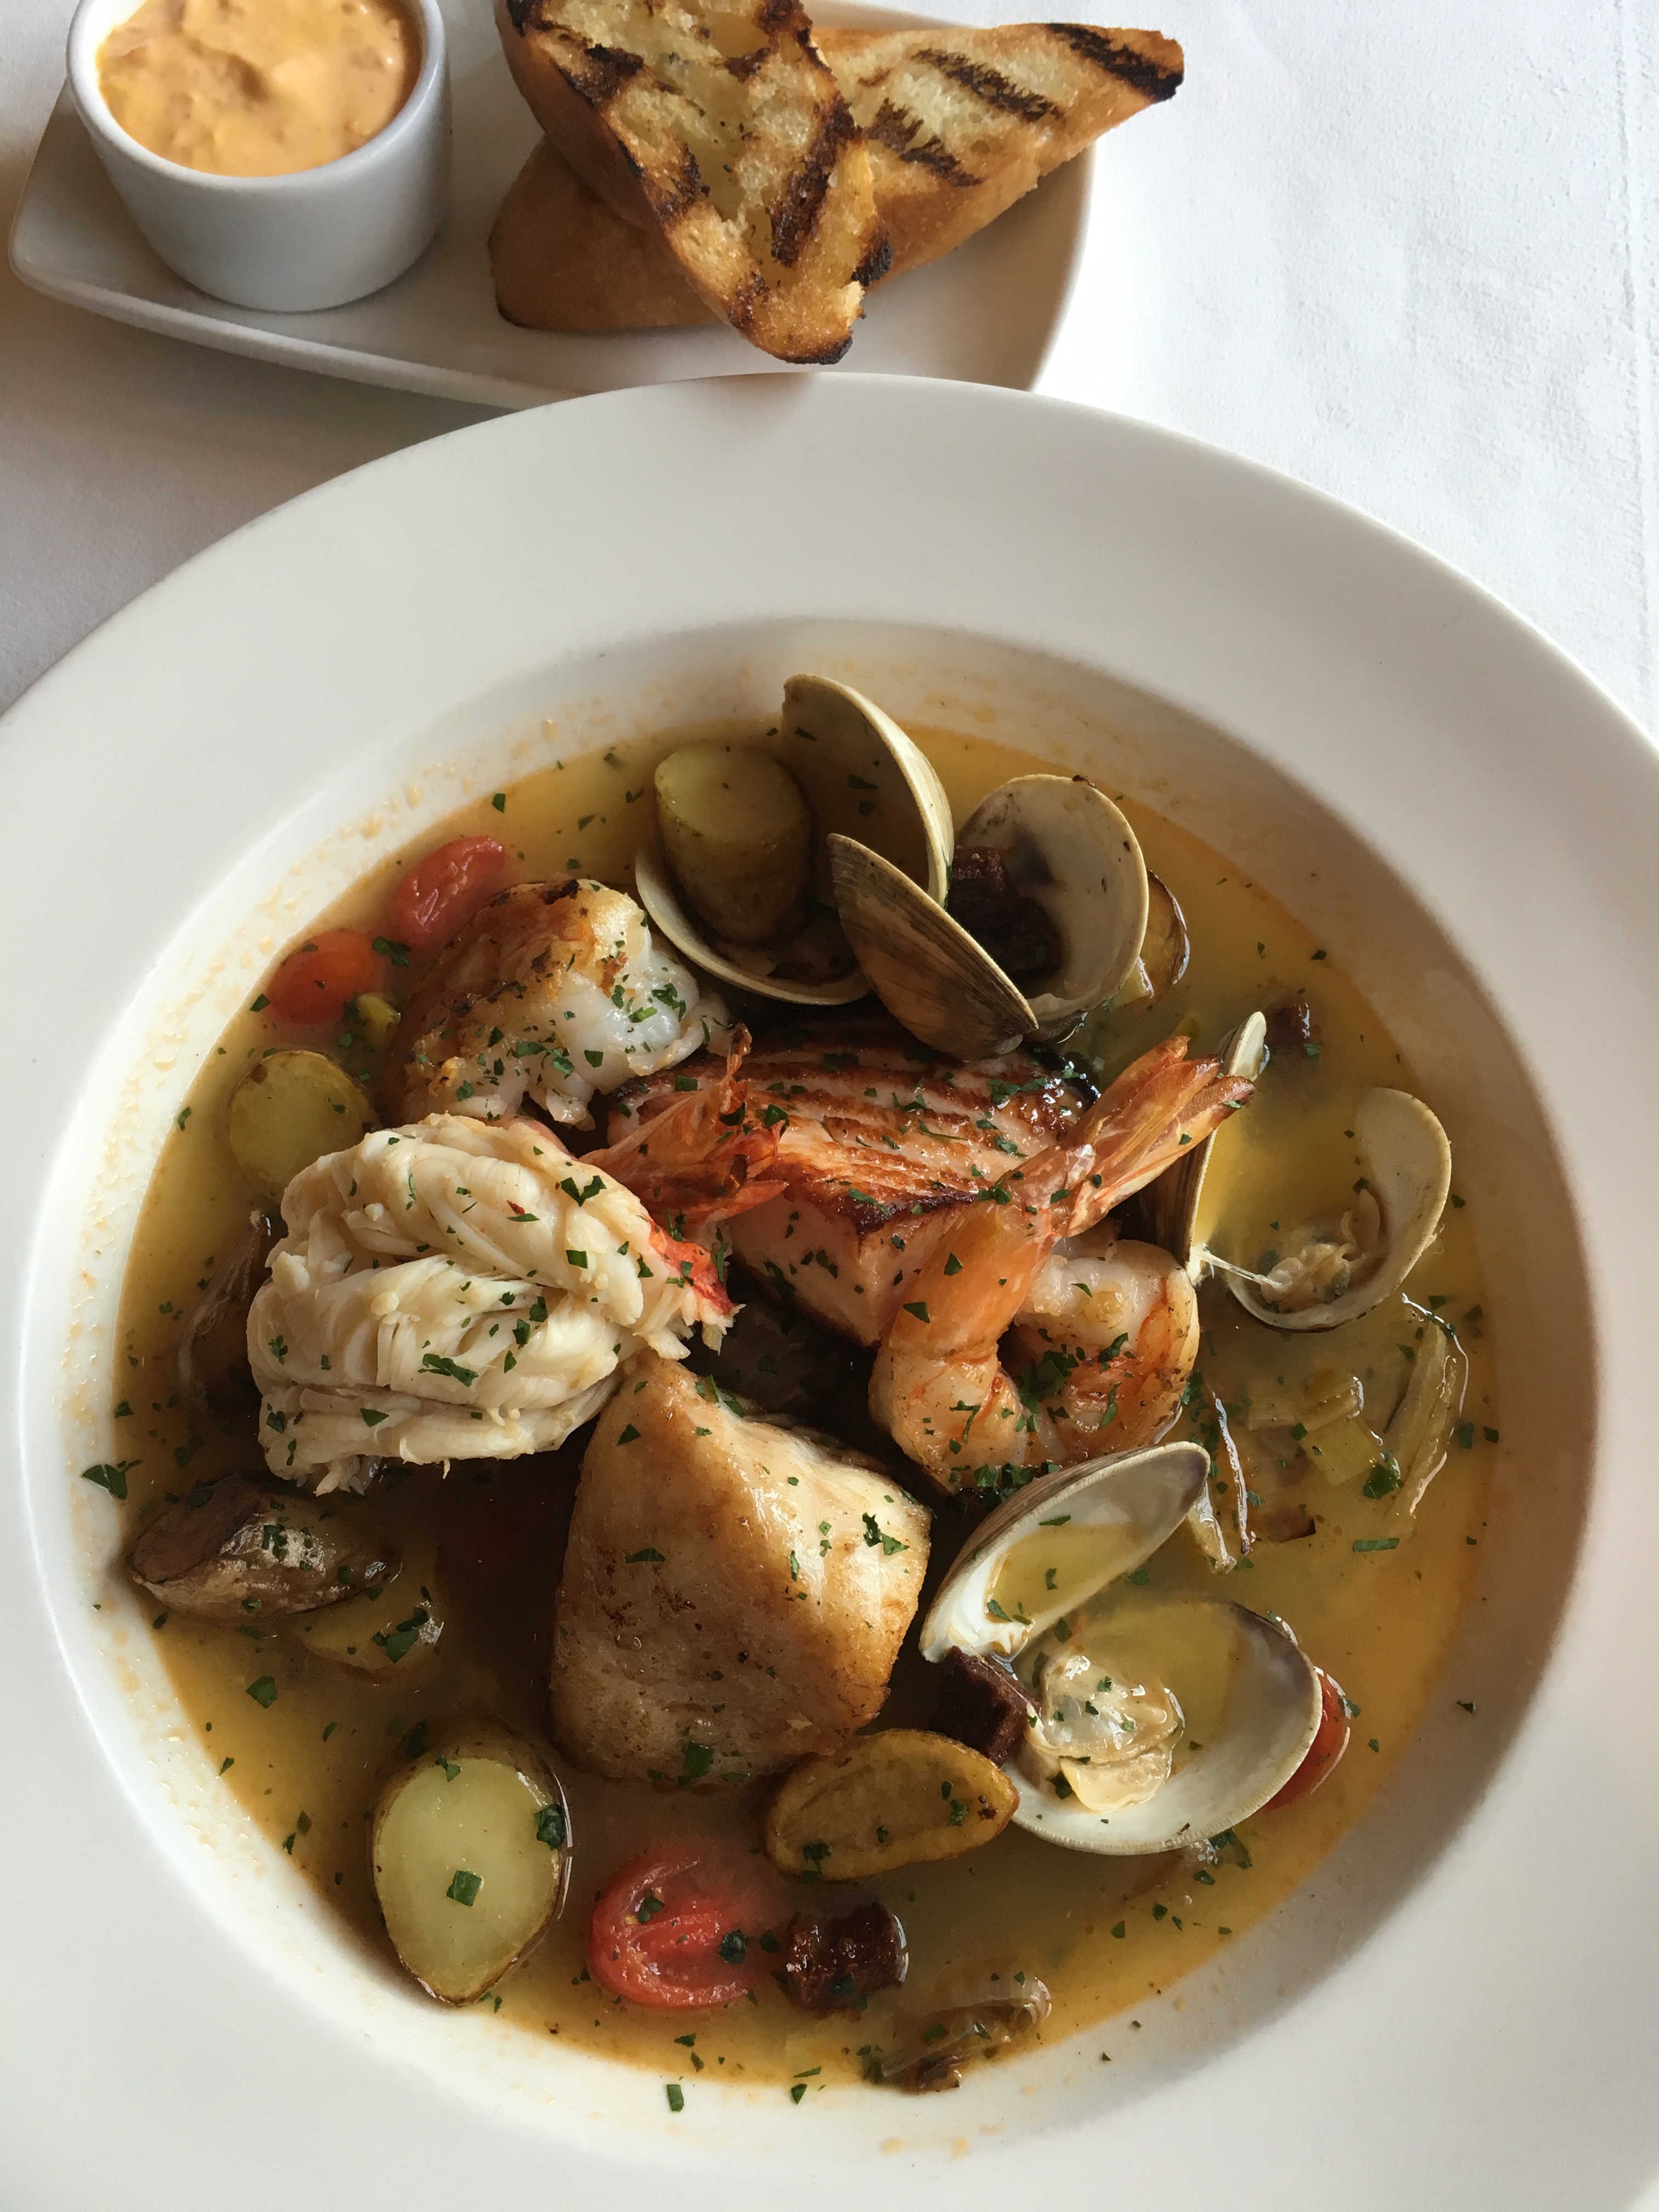 Bouillabaisse prepared with Alaskan Halibut, Bay of Fundy Salmon, White Shrimp, Littleneck Clams and a Lobster Tail.